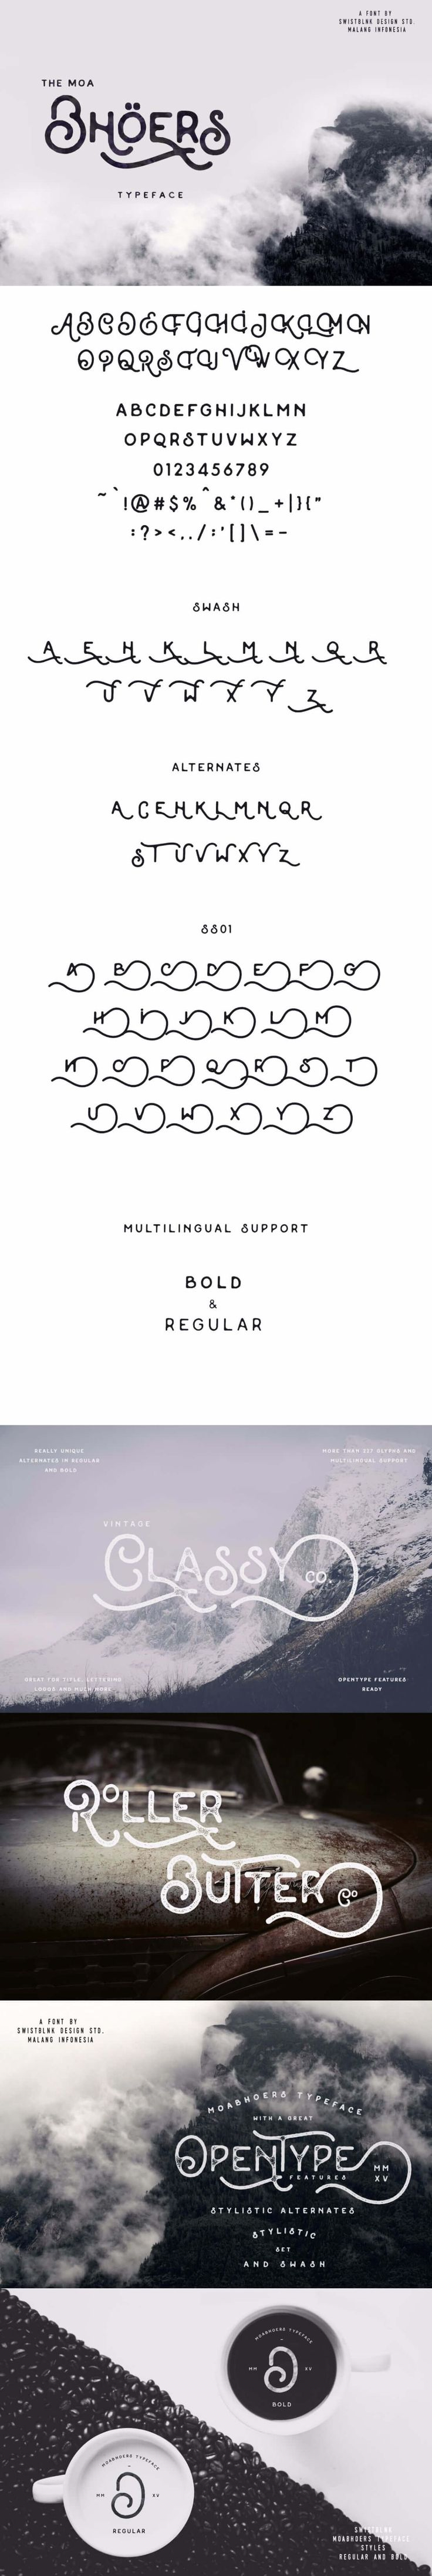 Moabhoers Typeface Moabhoers is a handmade modern vintage display typeface and combines the style of classic typography with the modern handlettering.